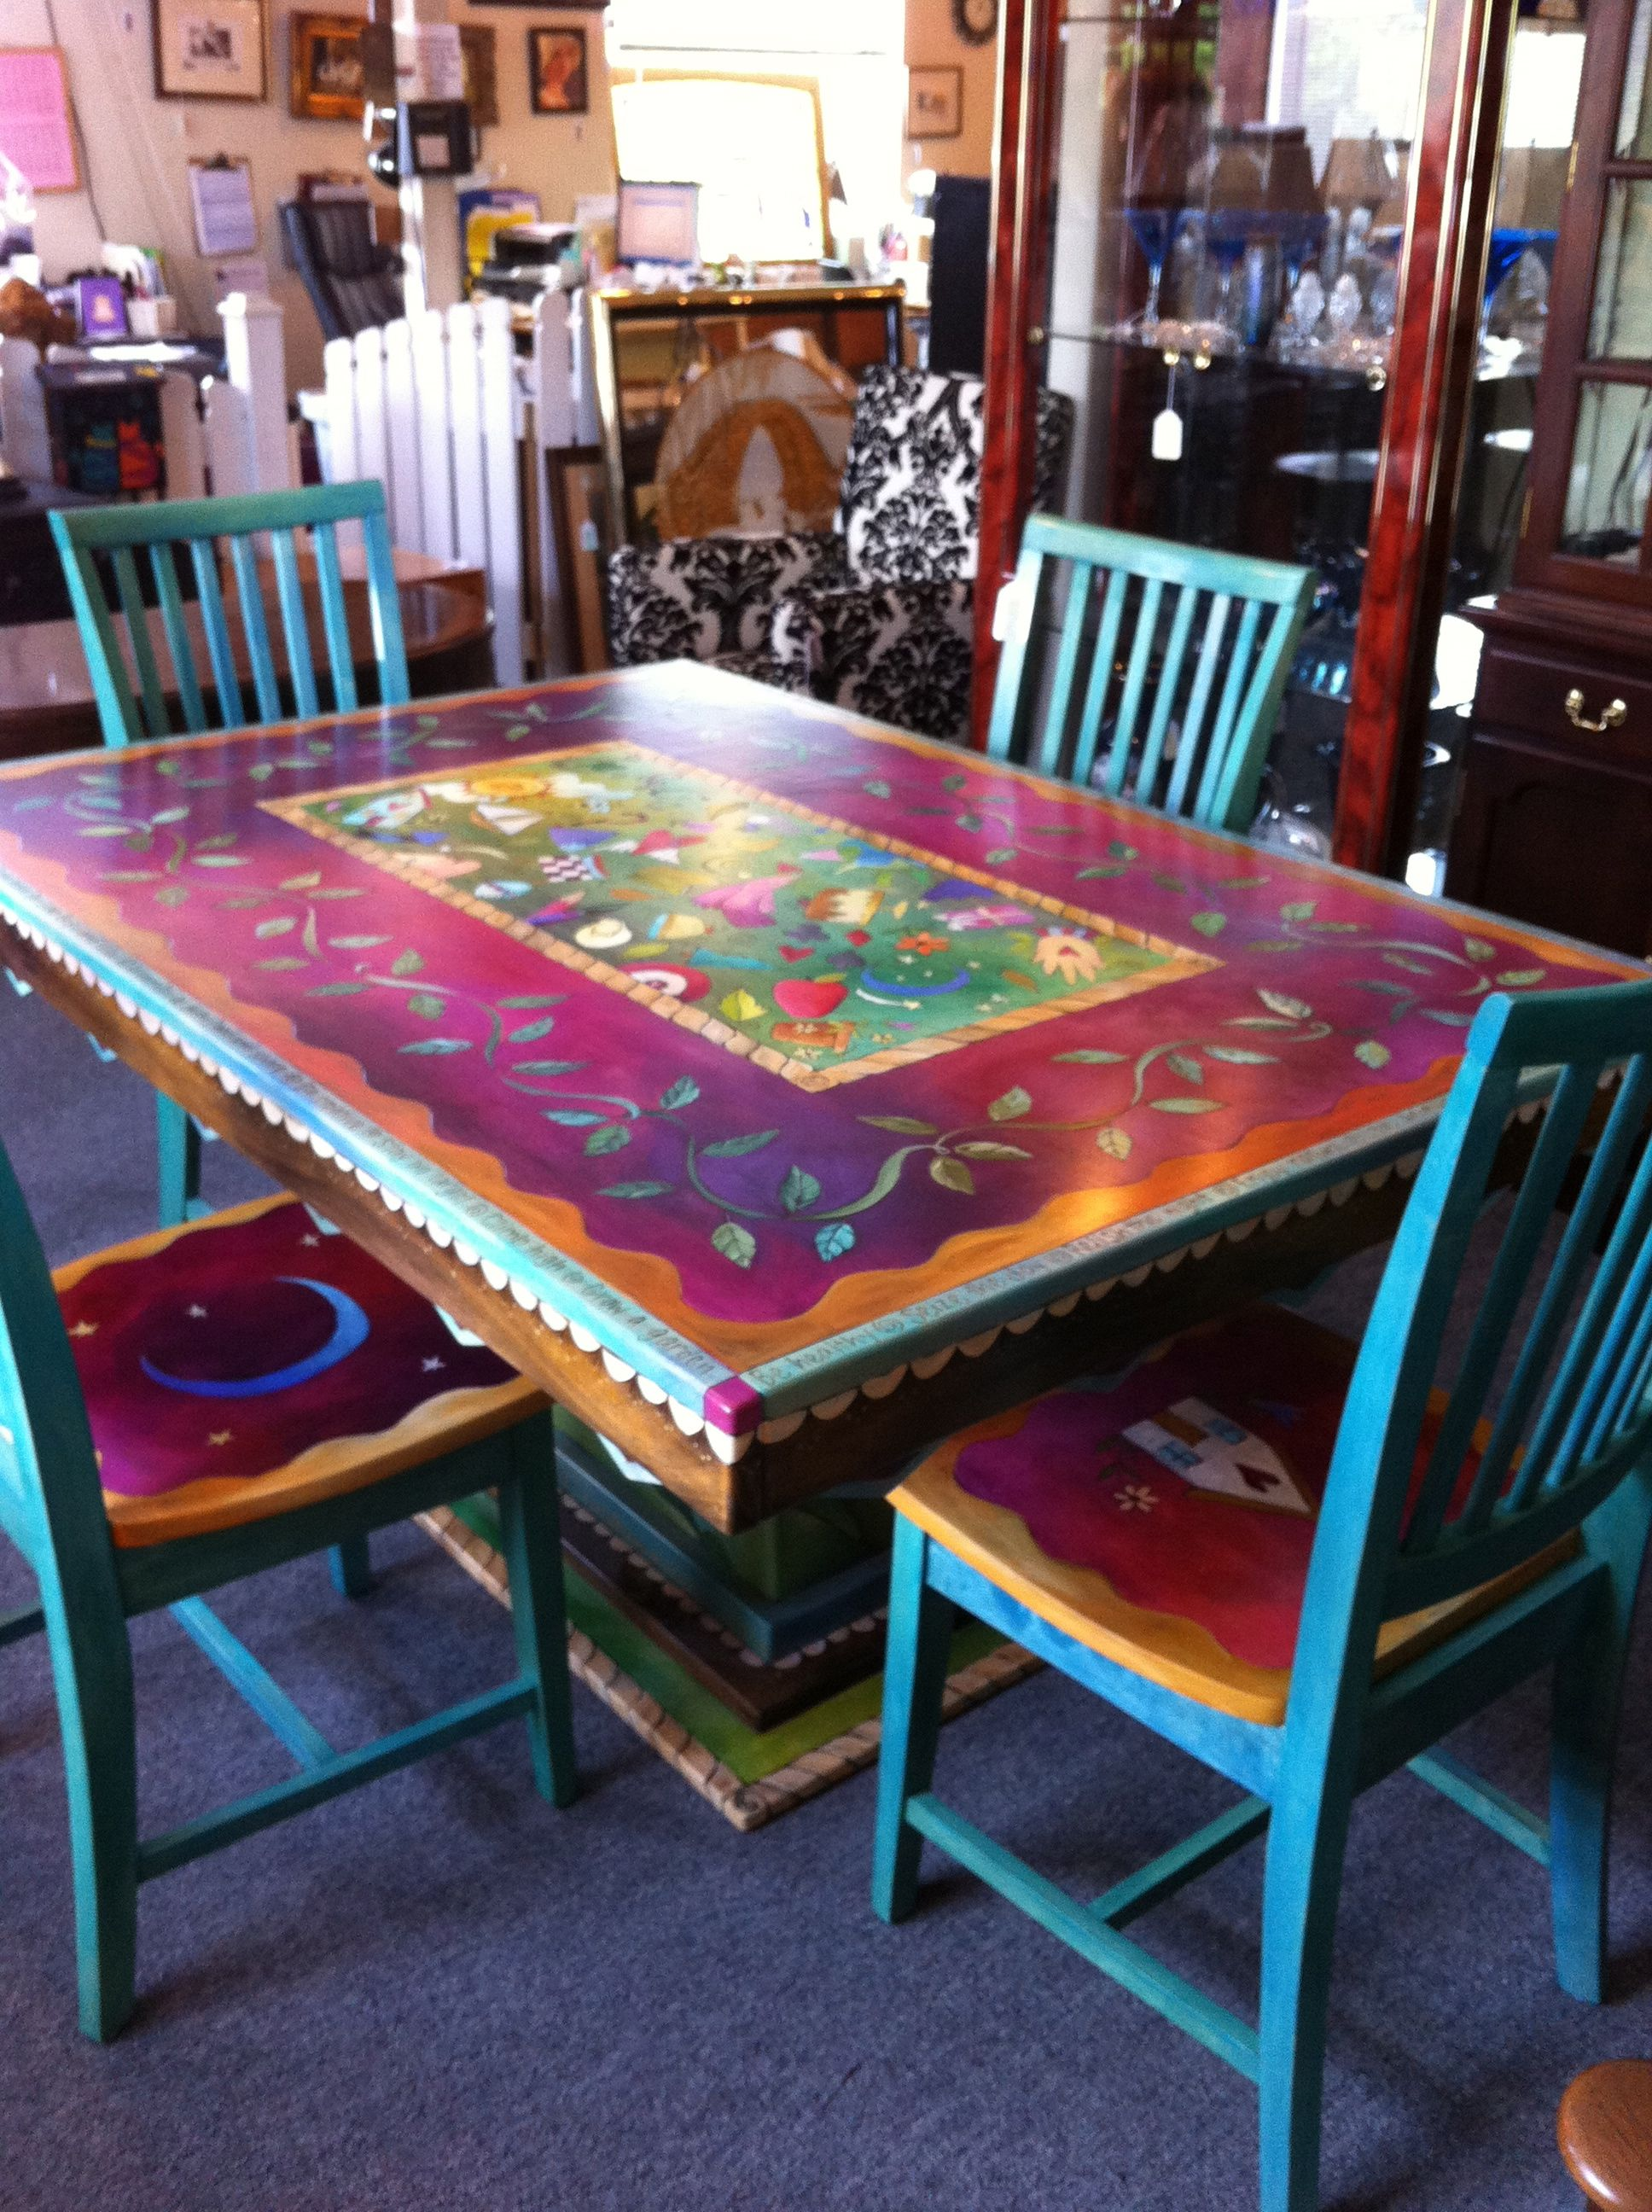 Table Painting Designs Gorgeous Hand Painted Table And Chairs Now I Can 39t Decide